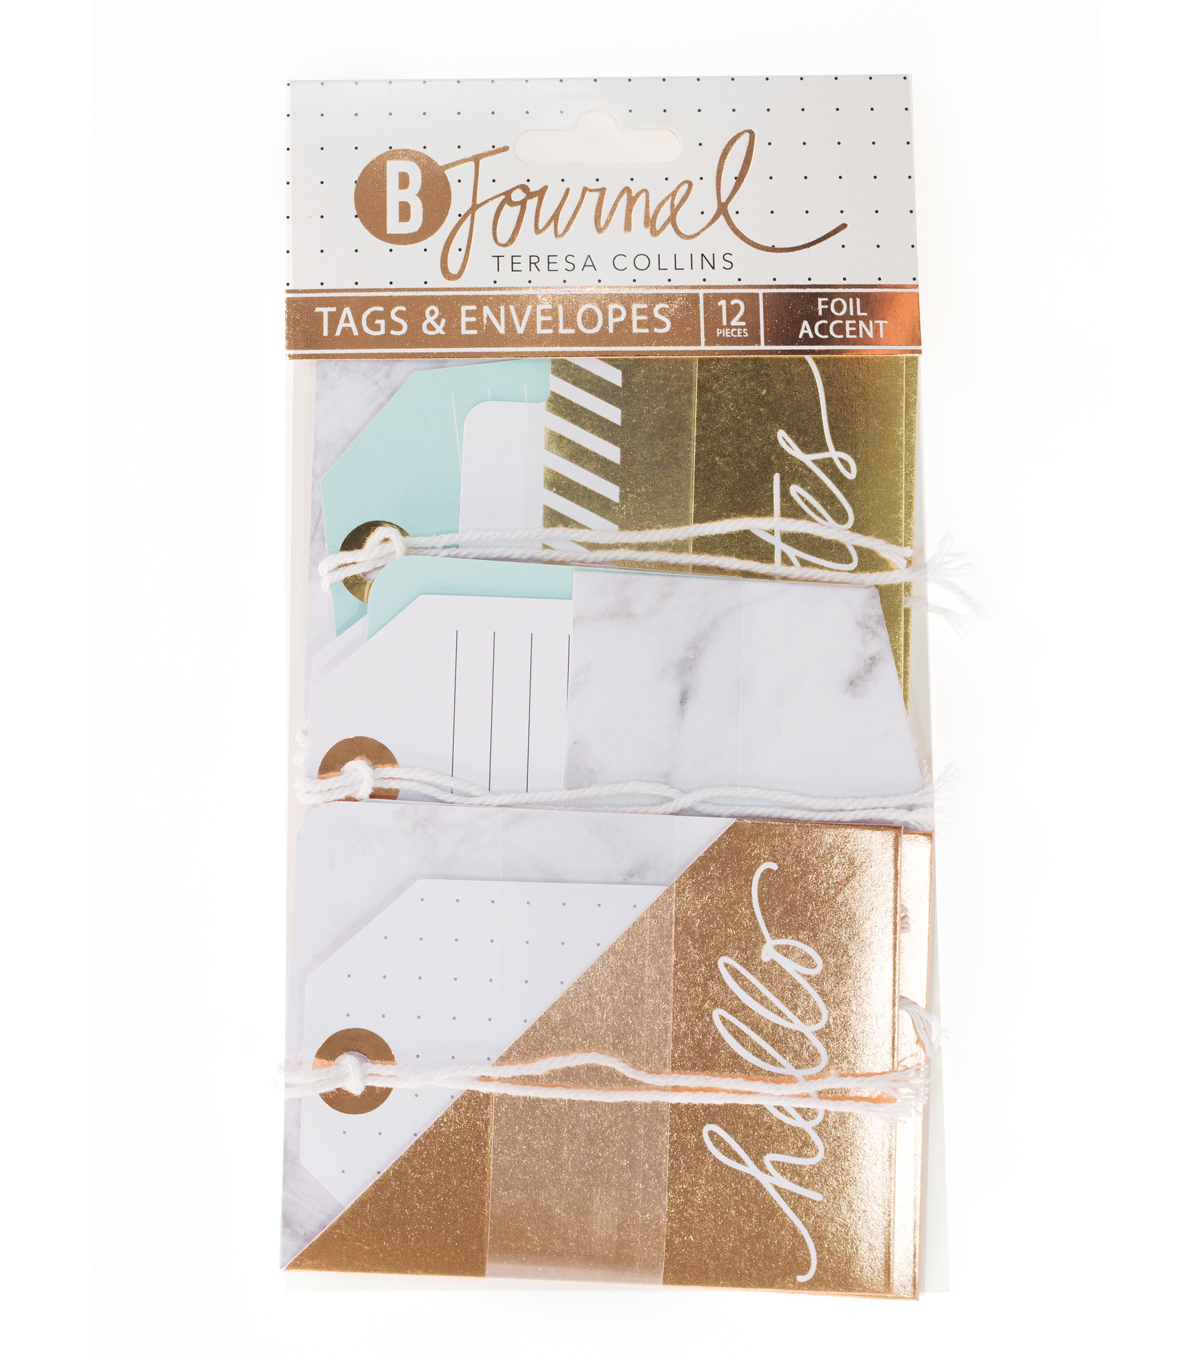 Teresa Collins™ B-Journal Pack of 12 Tags & Envelopes